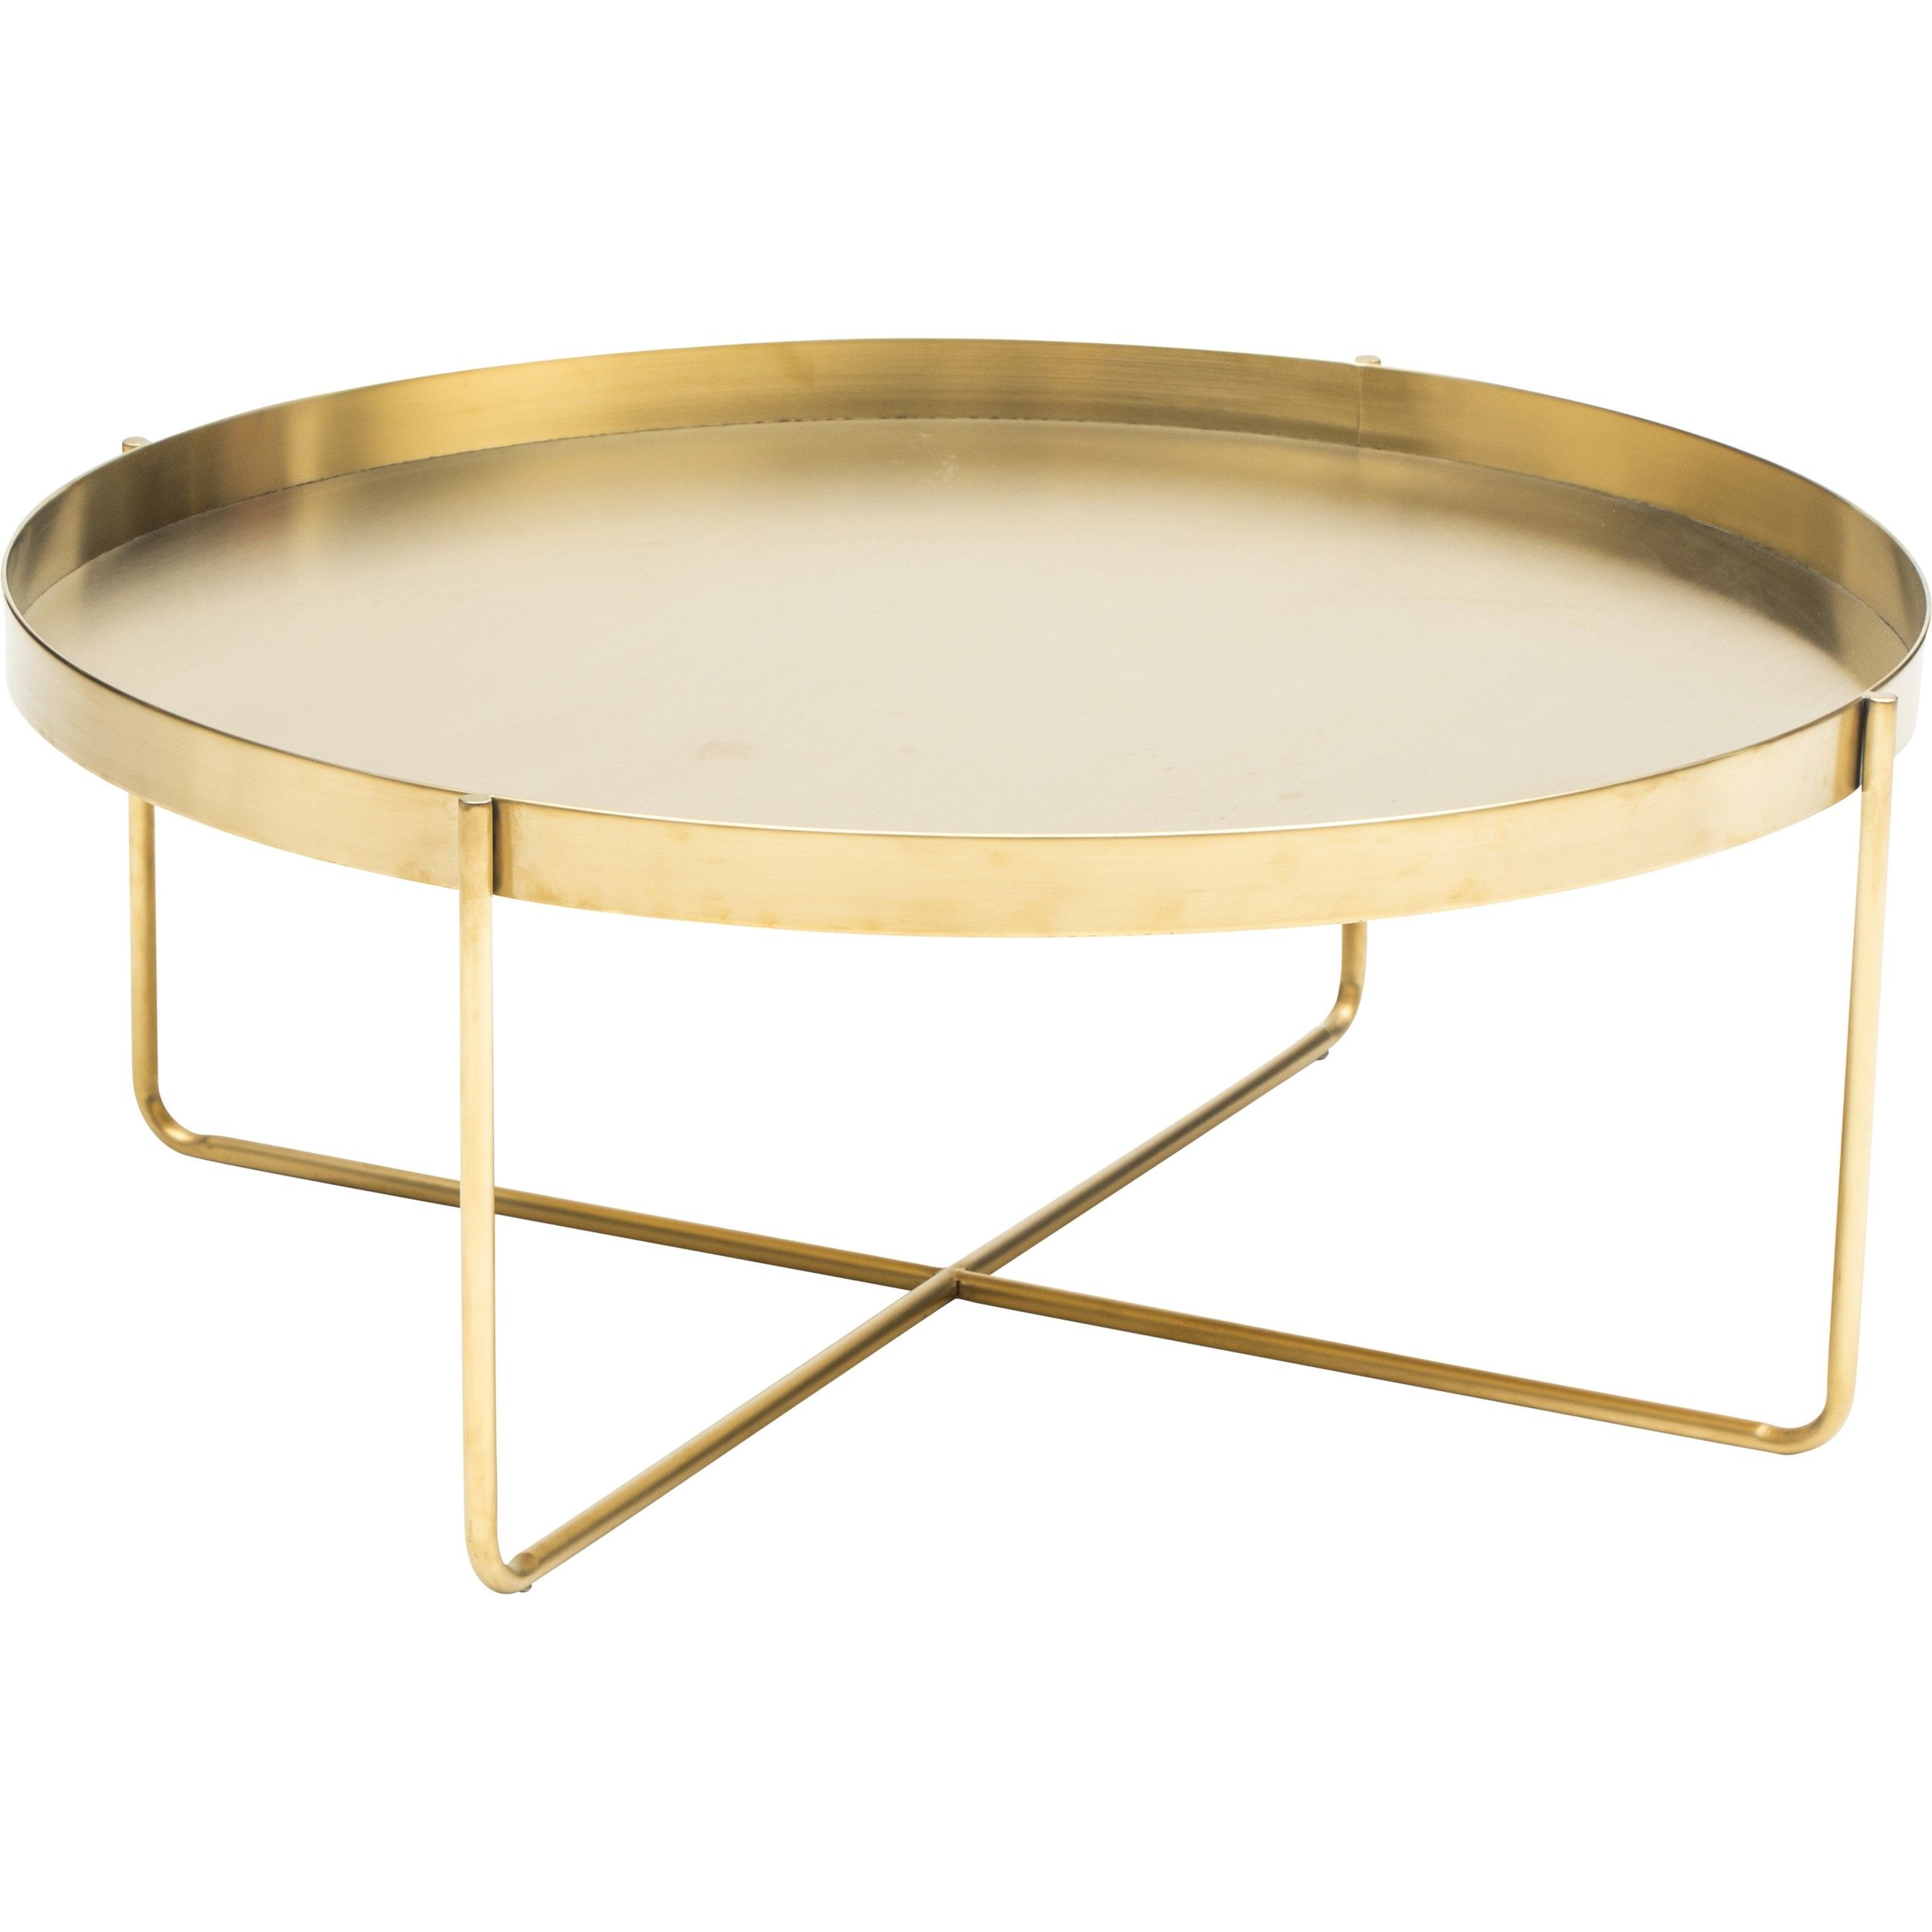 gaultier oval coffee table gold client ideas round coffee table oval coffee tables brass. Black Bedroom Furniture Sets. Home Design Ideas